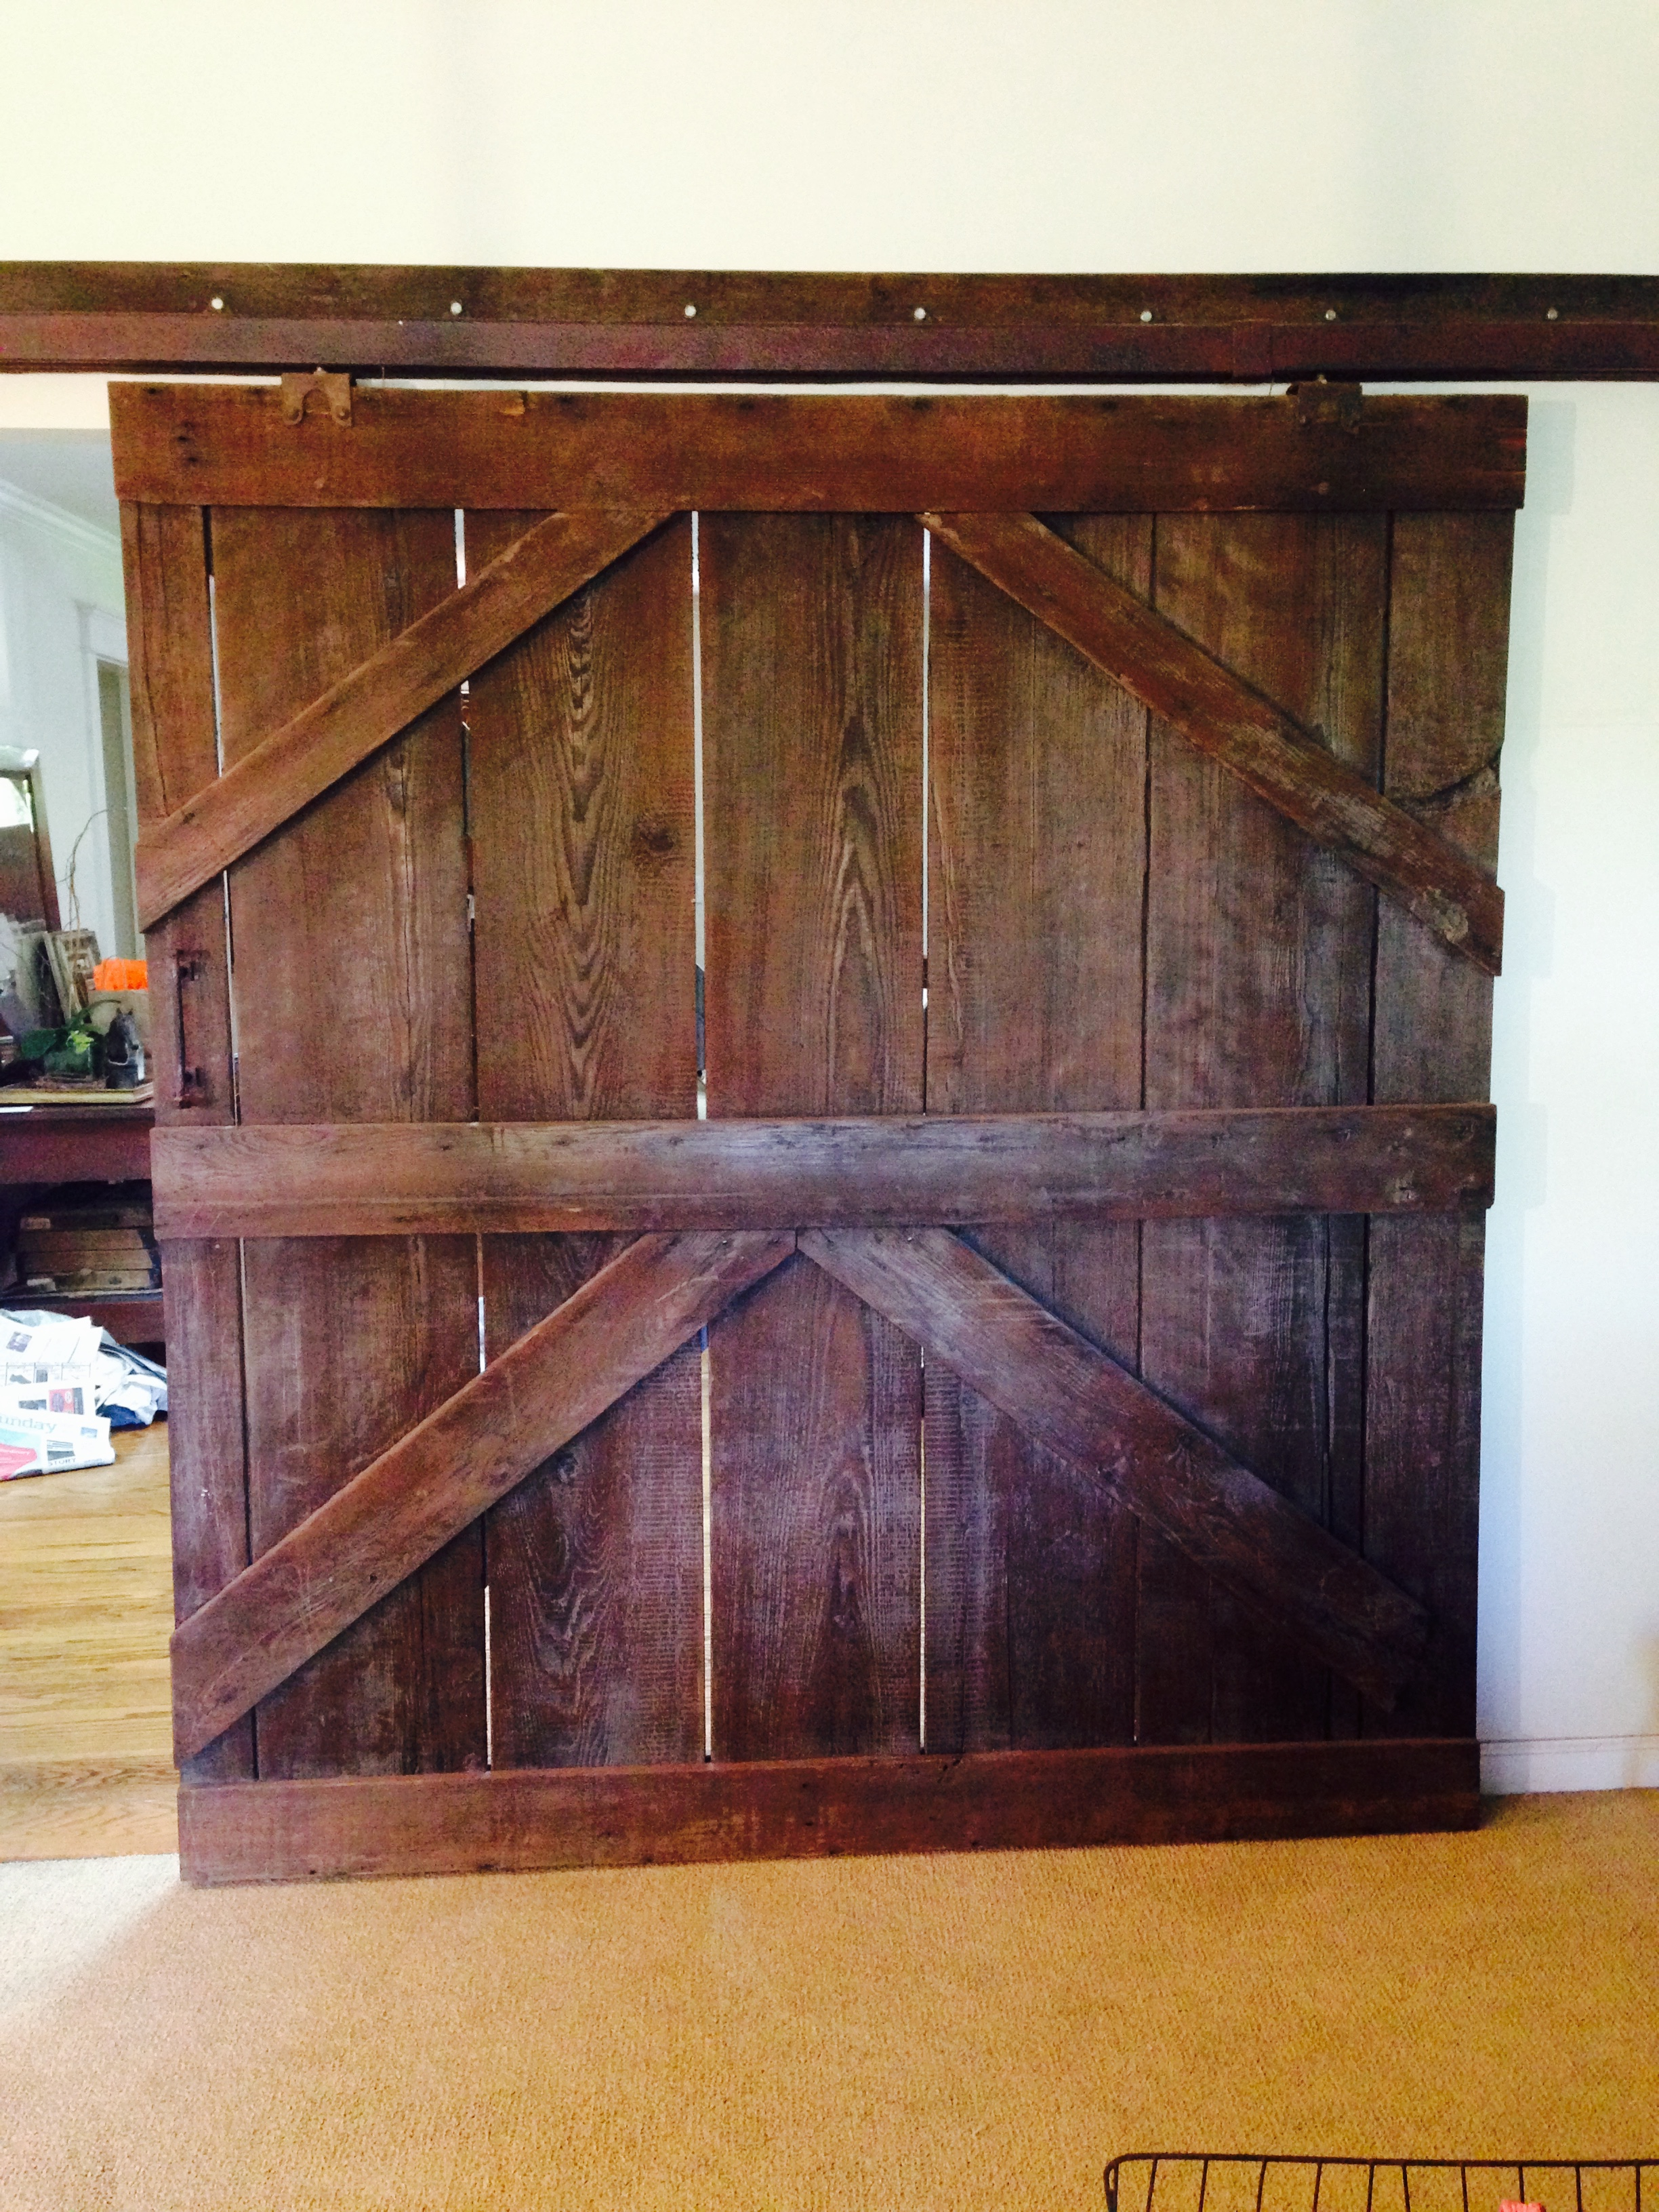 Salvaged barn door in a country-chic home.